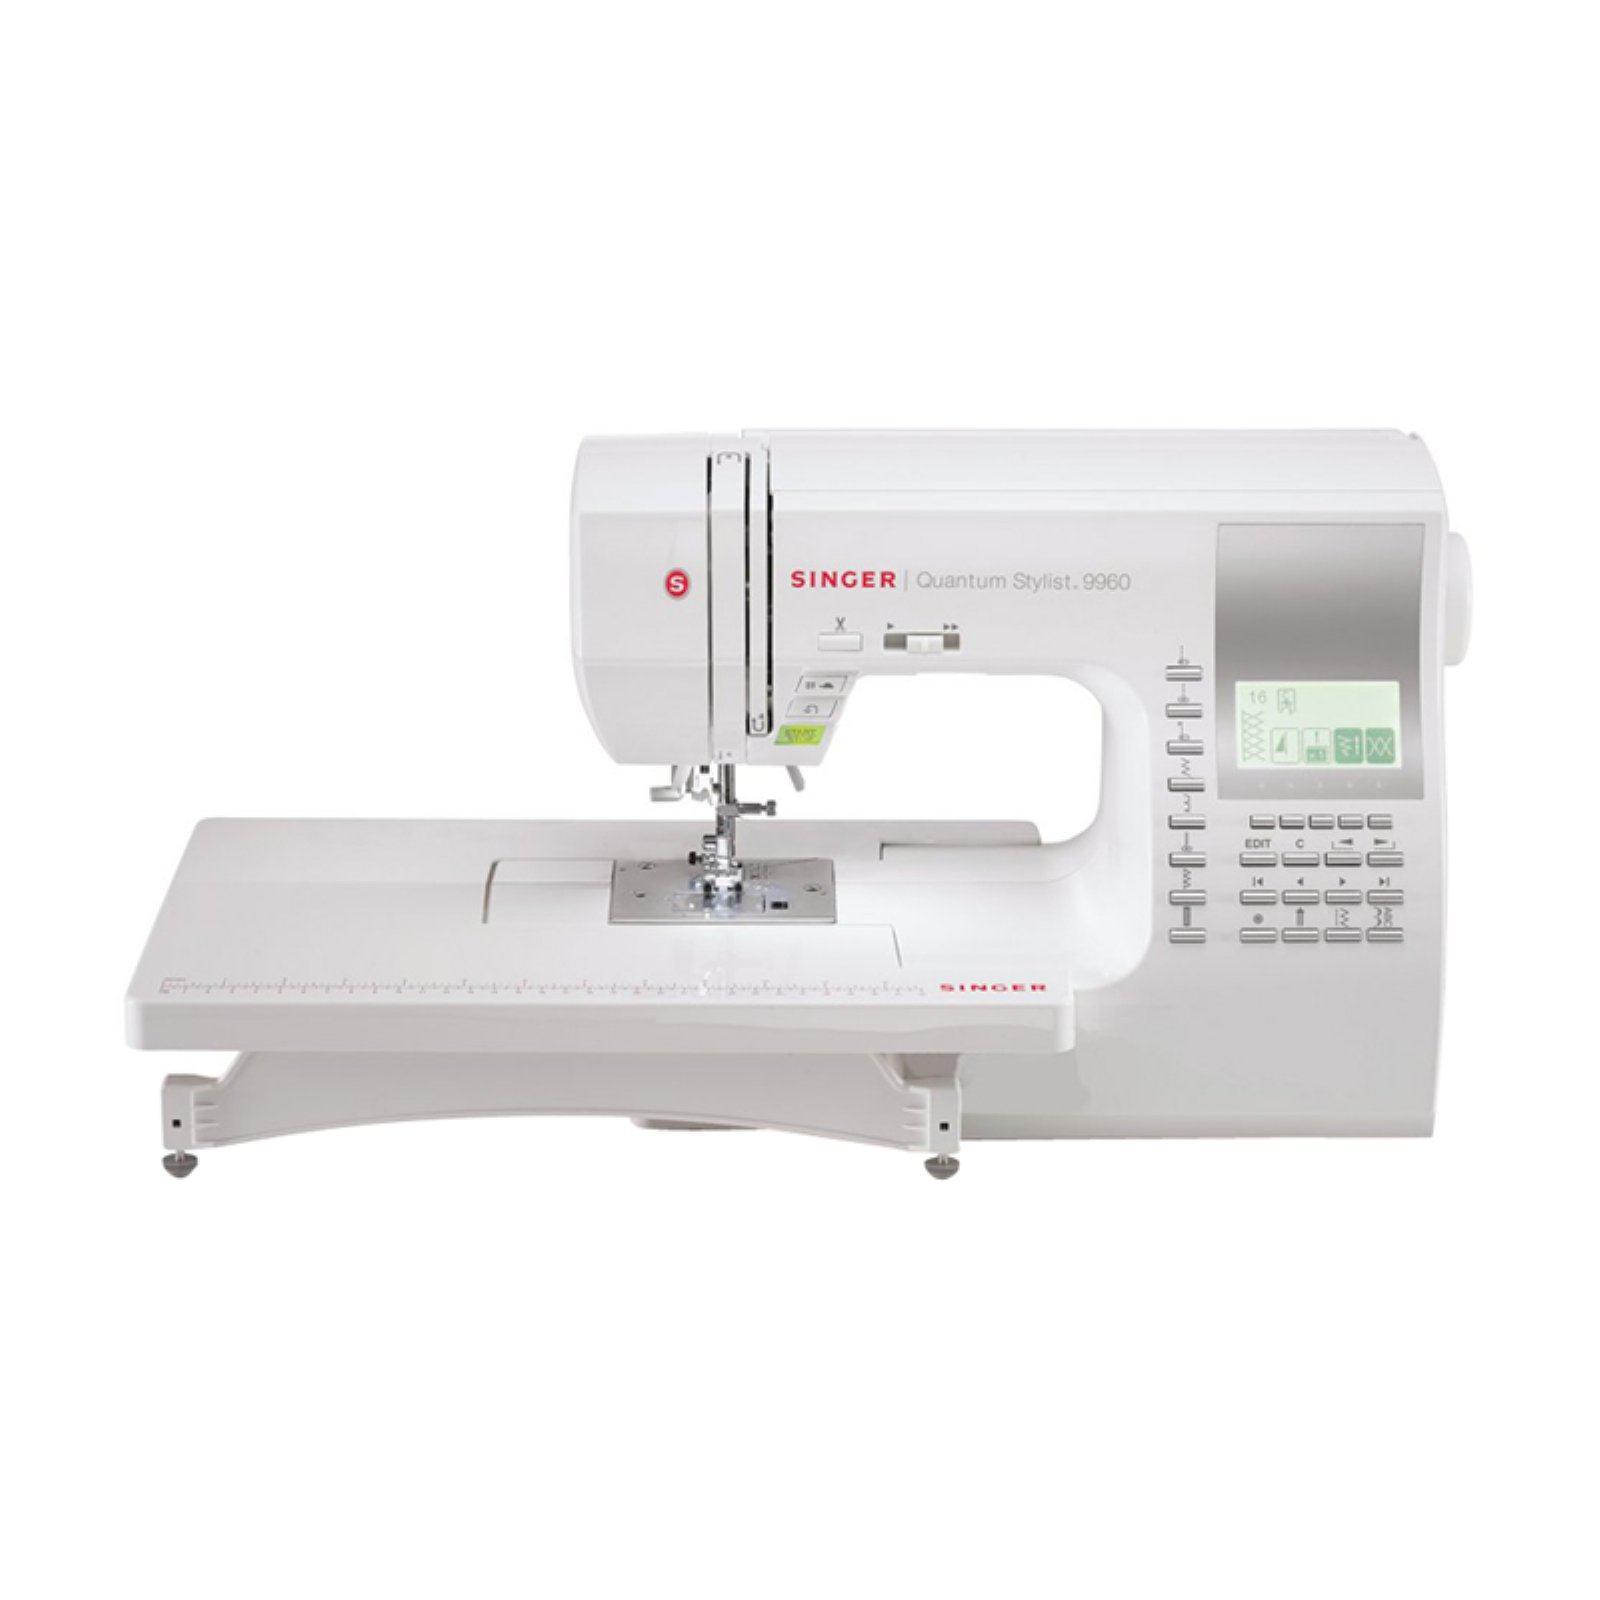 Singer 9960 Quantum Stylist 600-Stitch Computerized Sewing Machine with Extension Table, Bonus Accessories